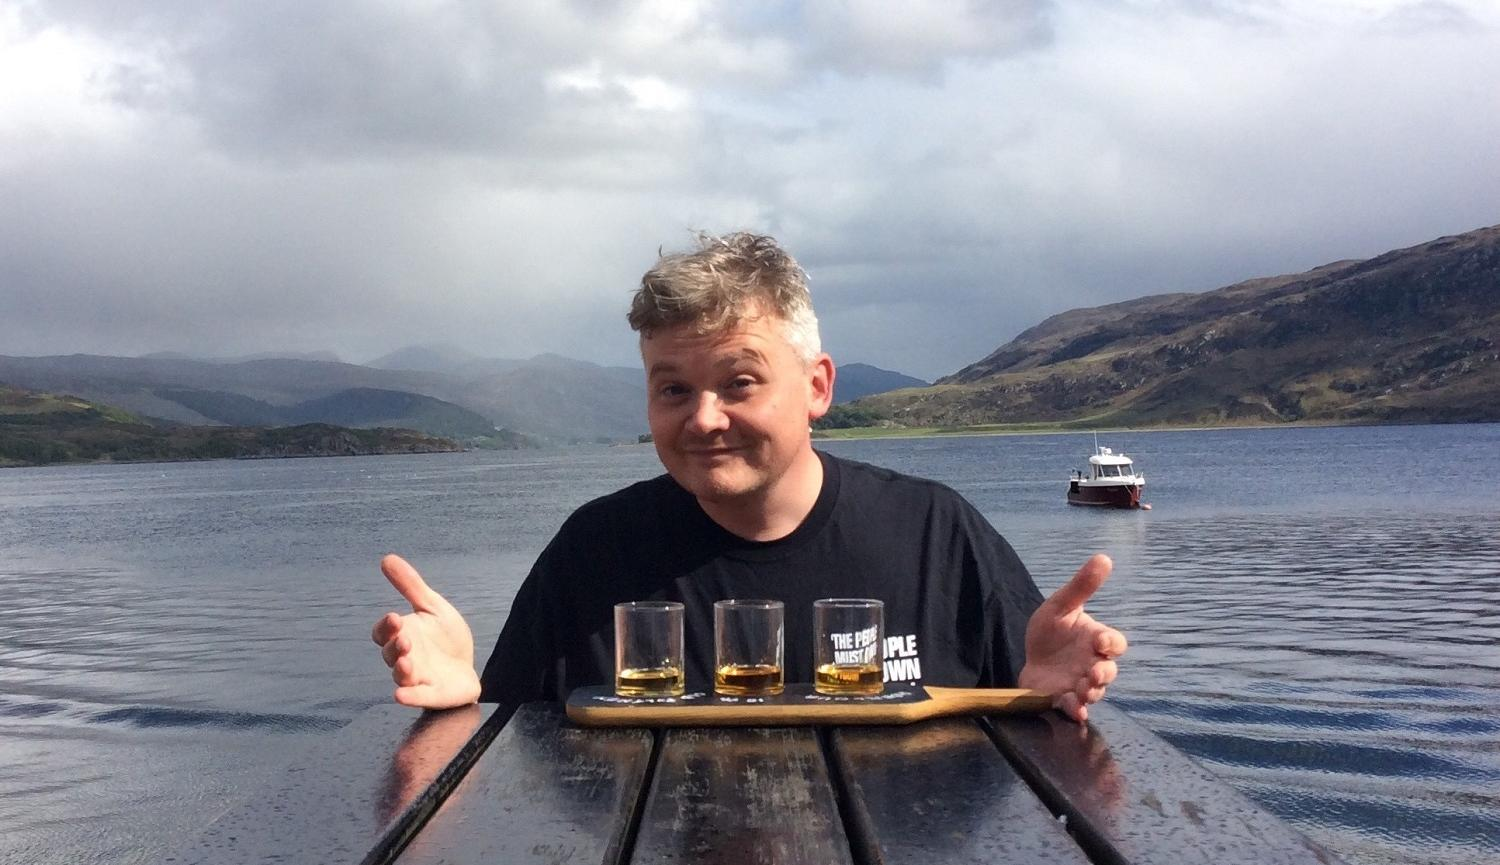 Joe Douglas by Loch with Whisky taster glasses